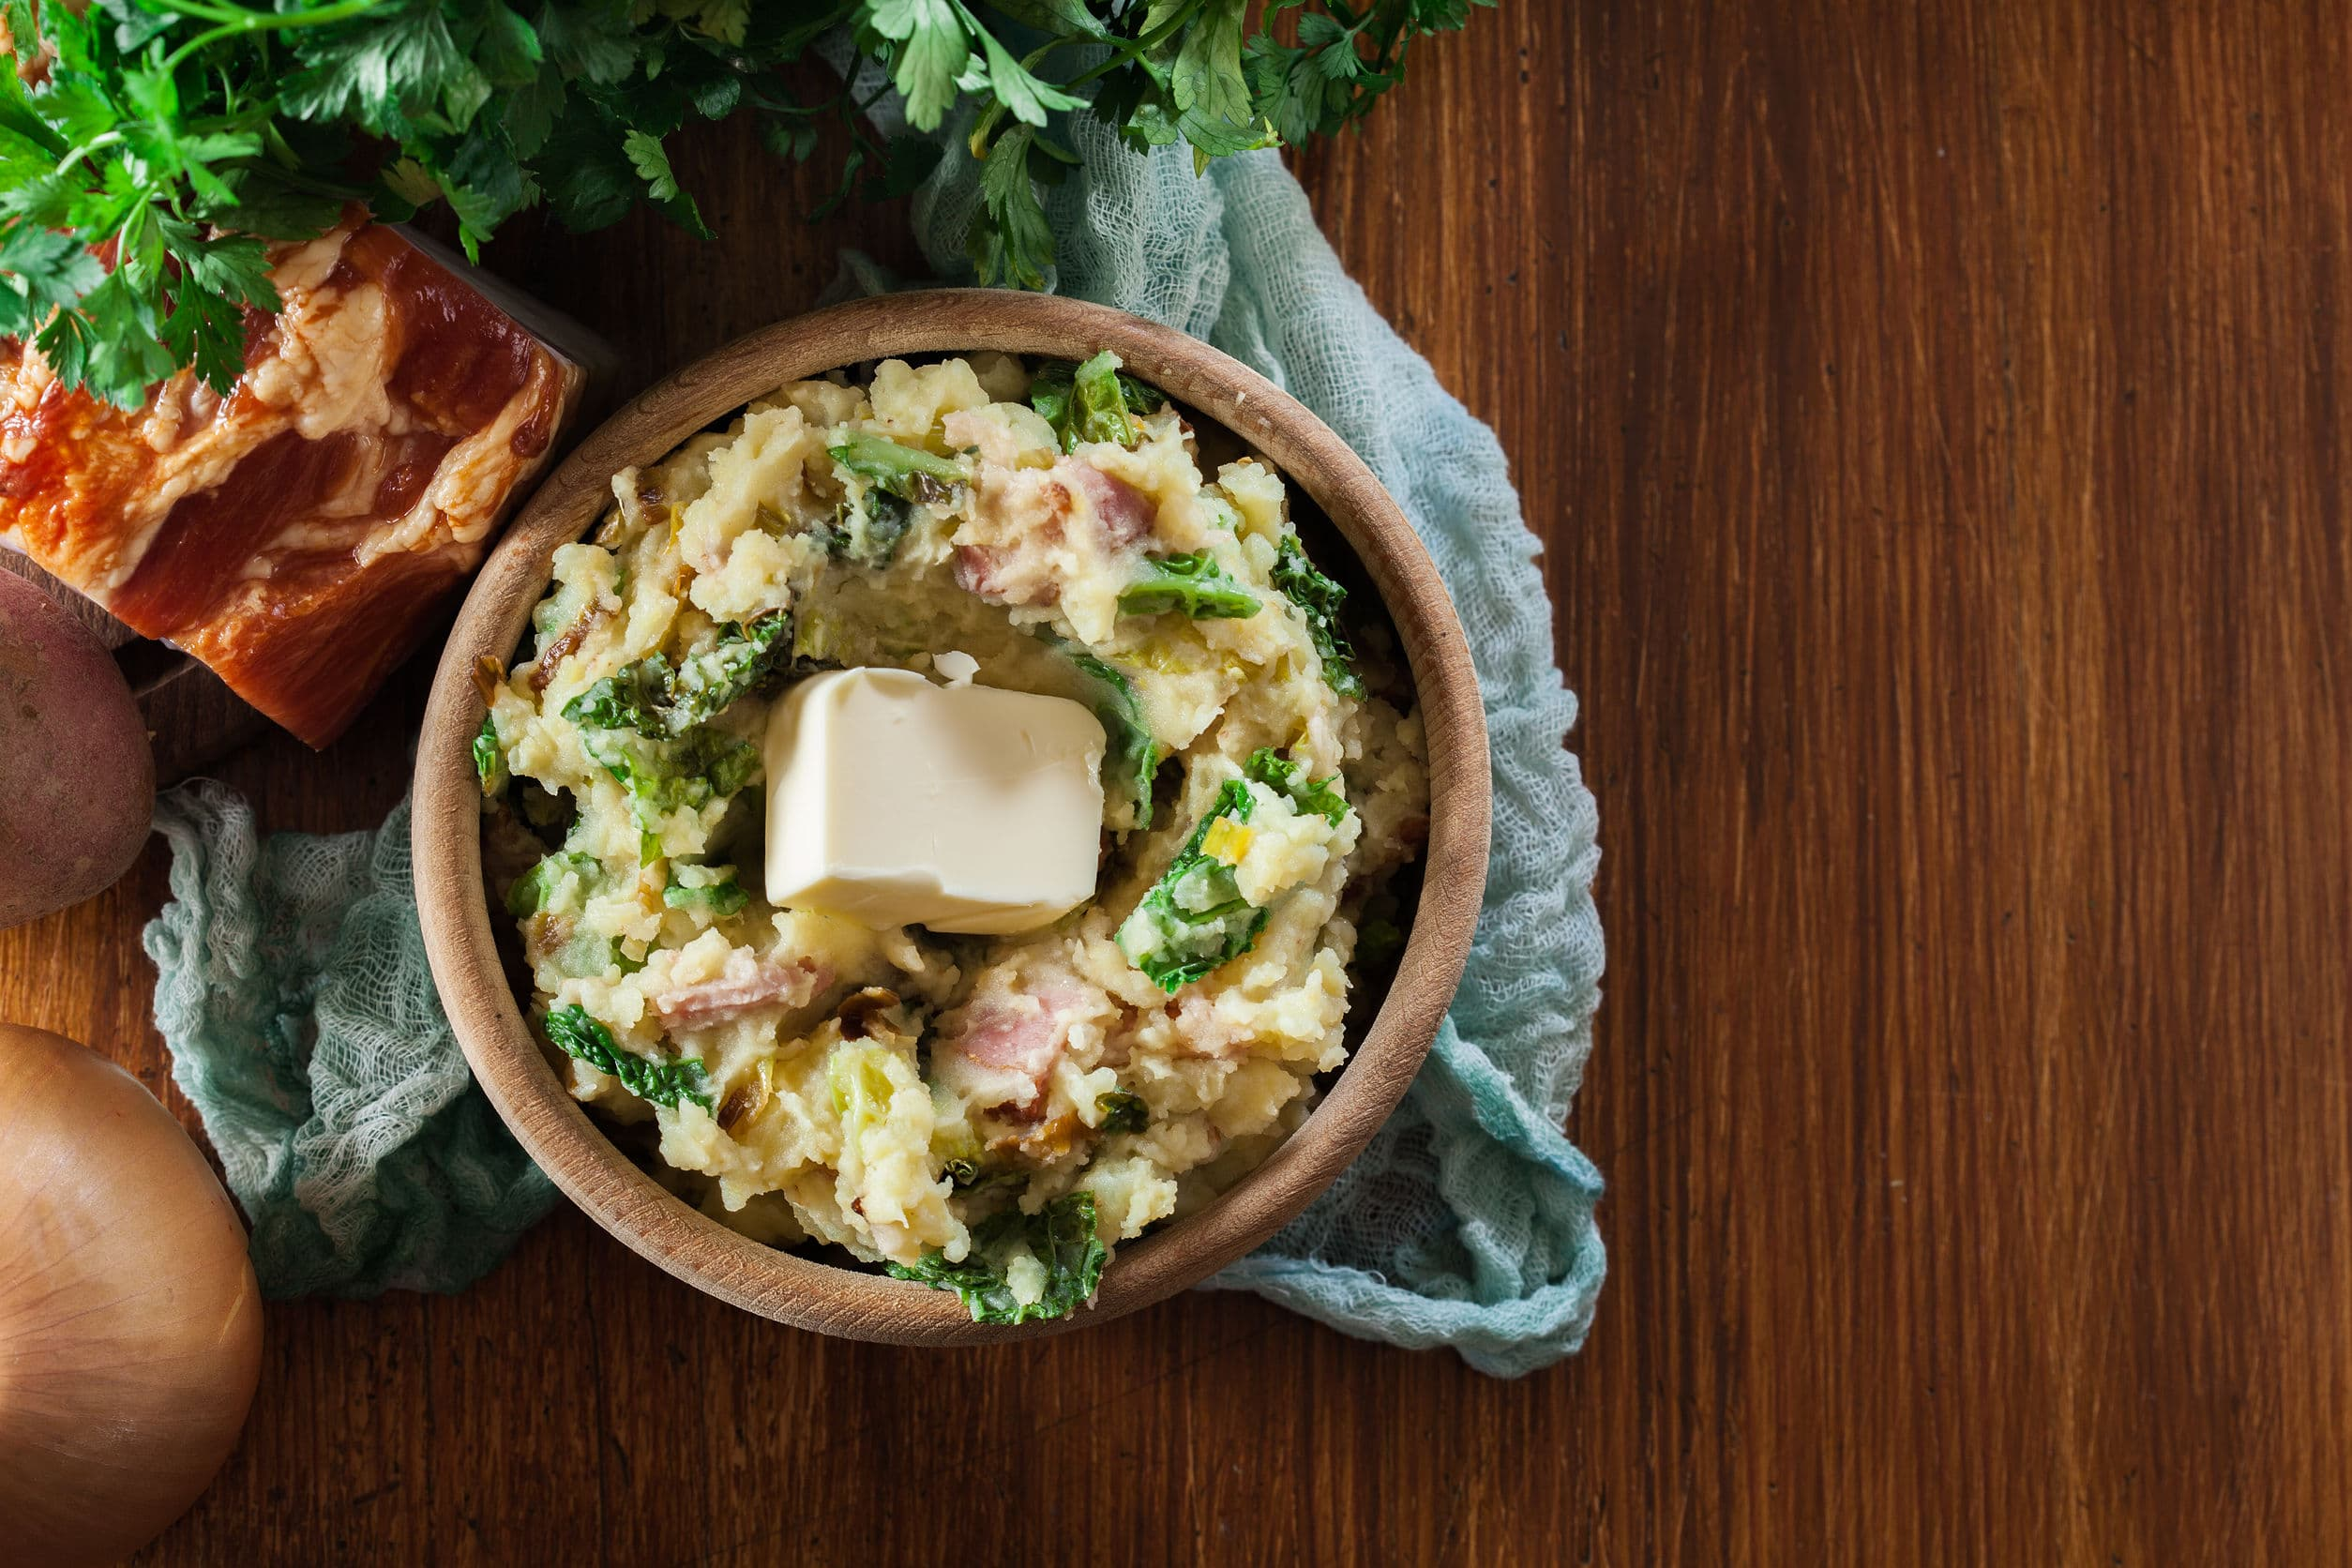 Festive St. Patrick's Day Dishes